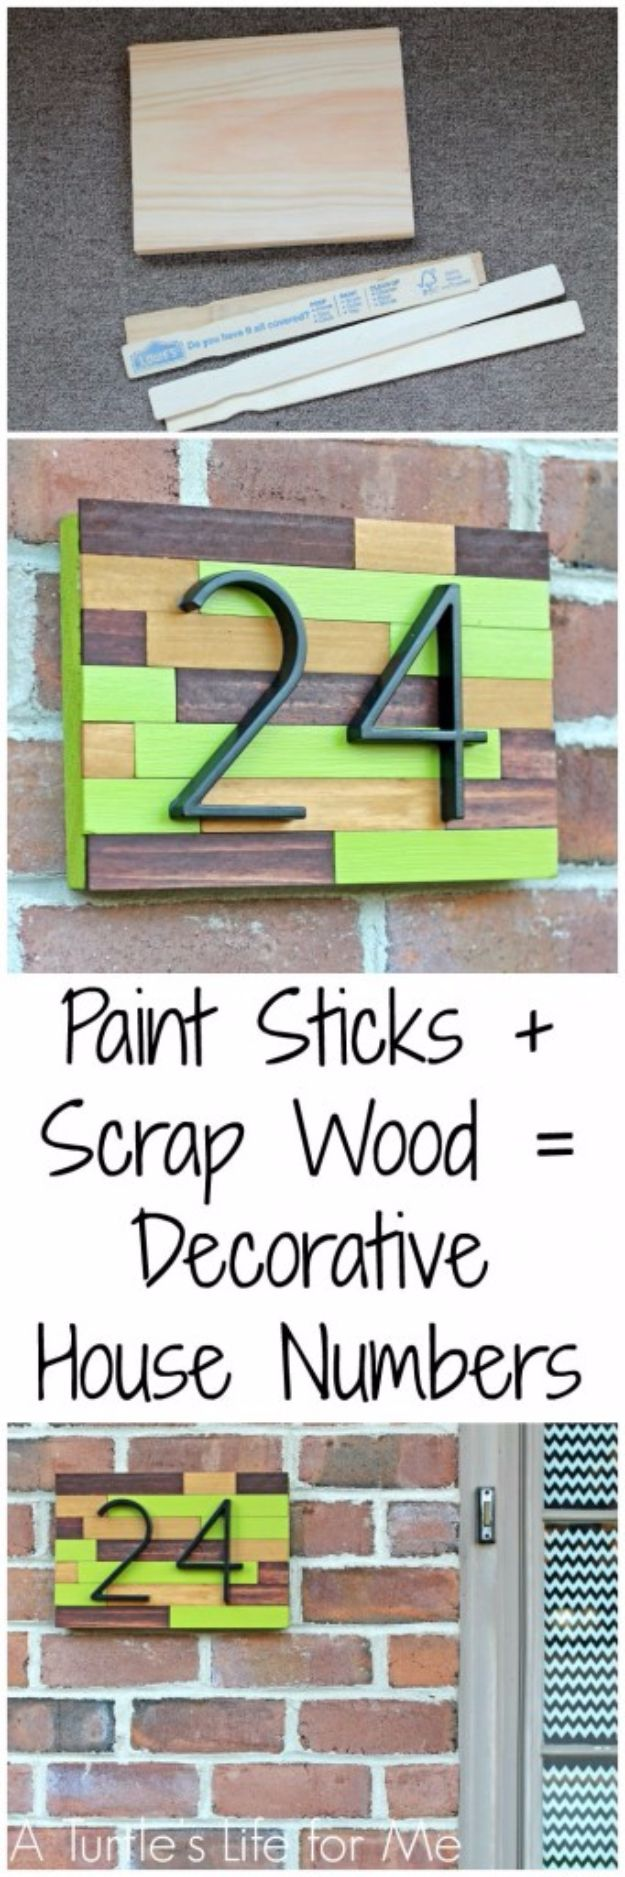 42 Diy Ideas To Increase Curb Appeal Plus Home Value